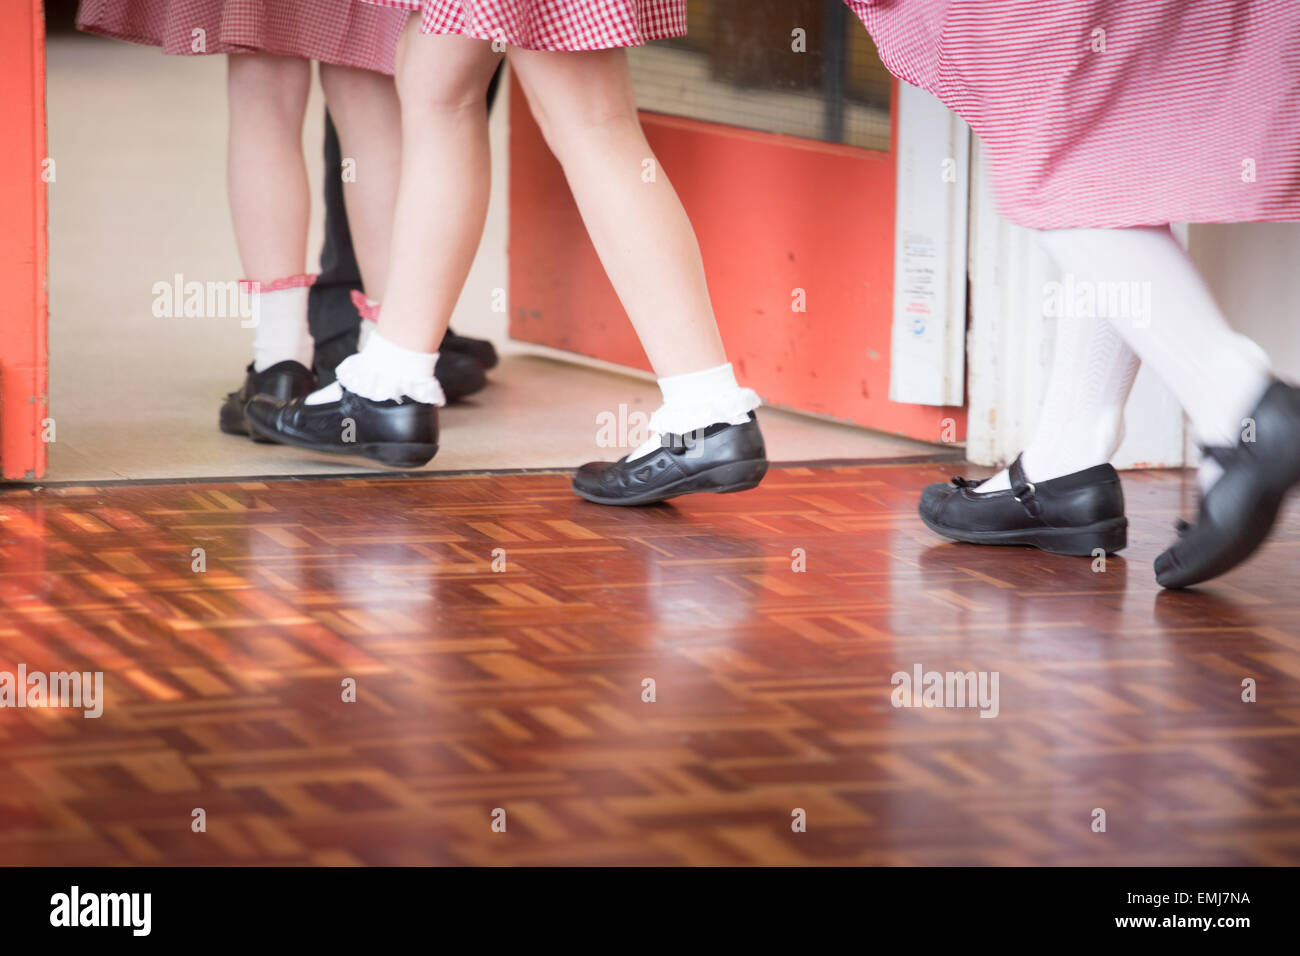 A group of UK primary schoolchildren leave the school hall after assembly - only legs and feet showing. - Stock Image